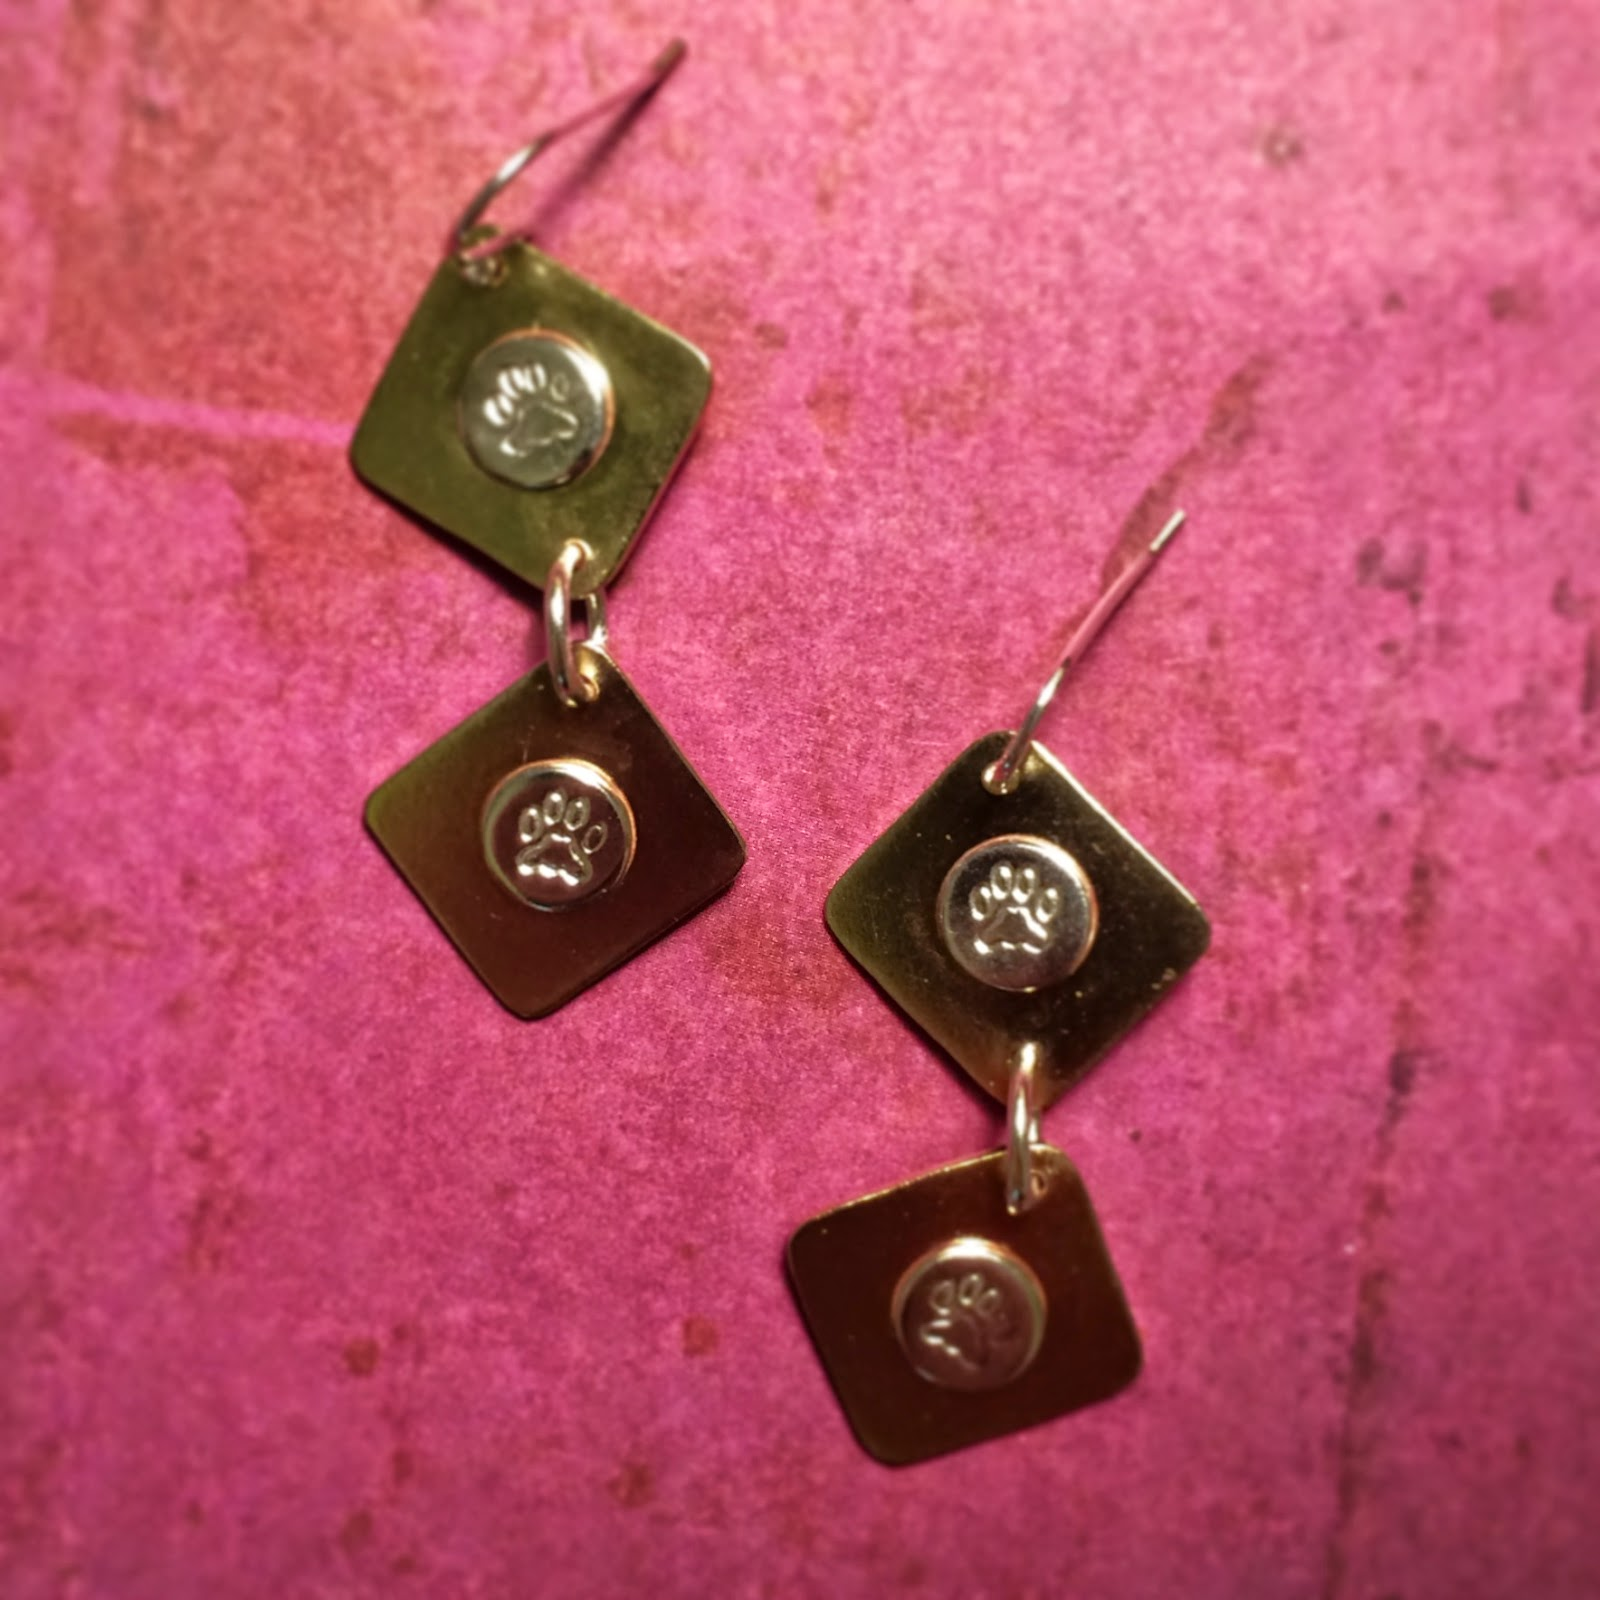 Earrings made with brass and silver with paw print stamps and soldered